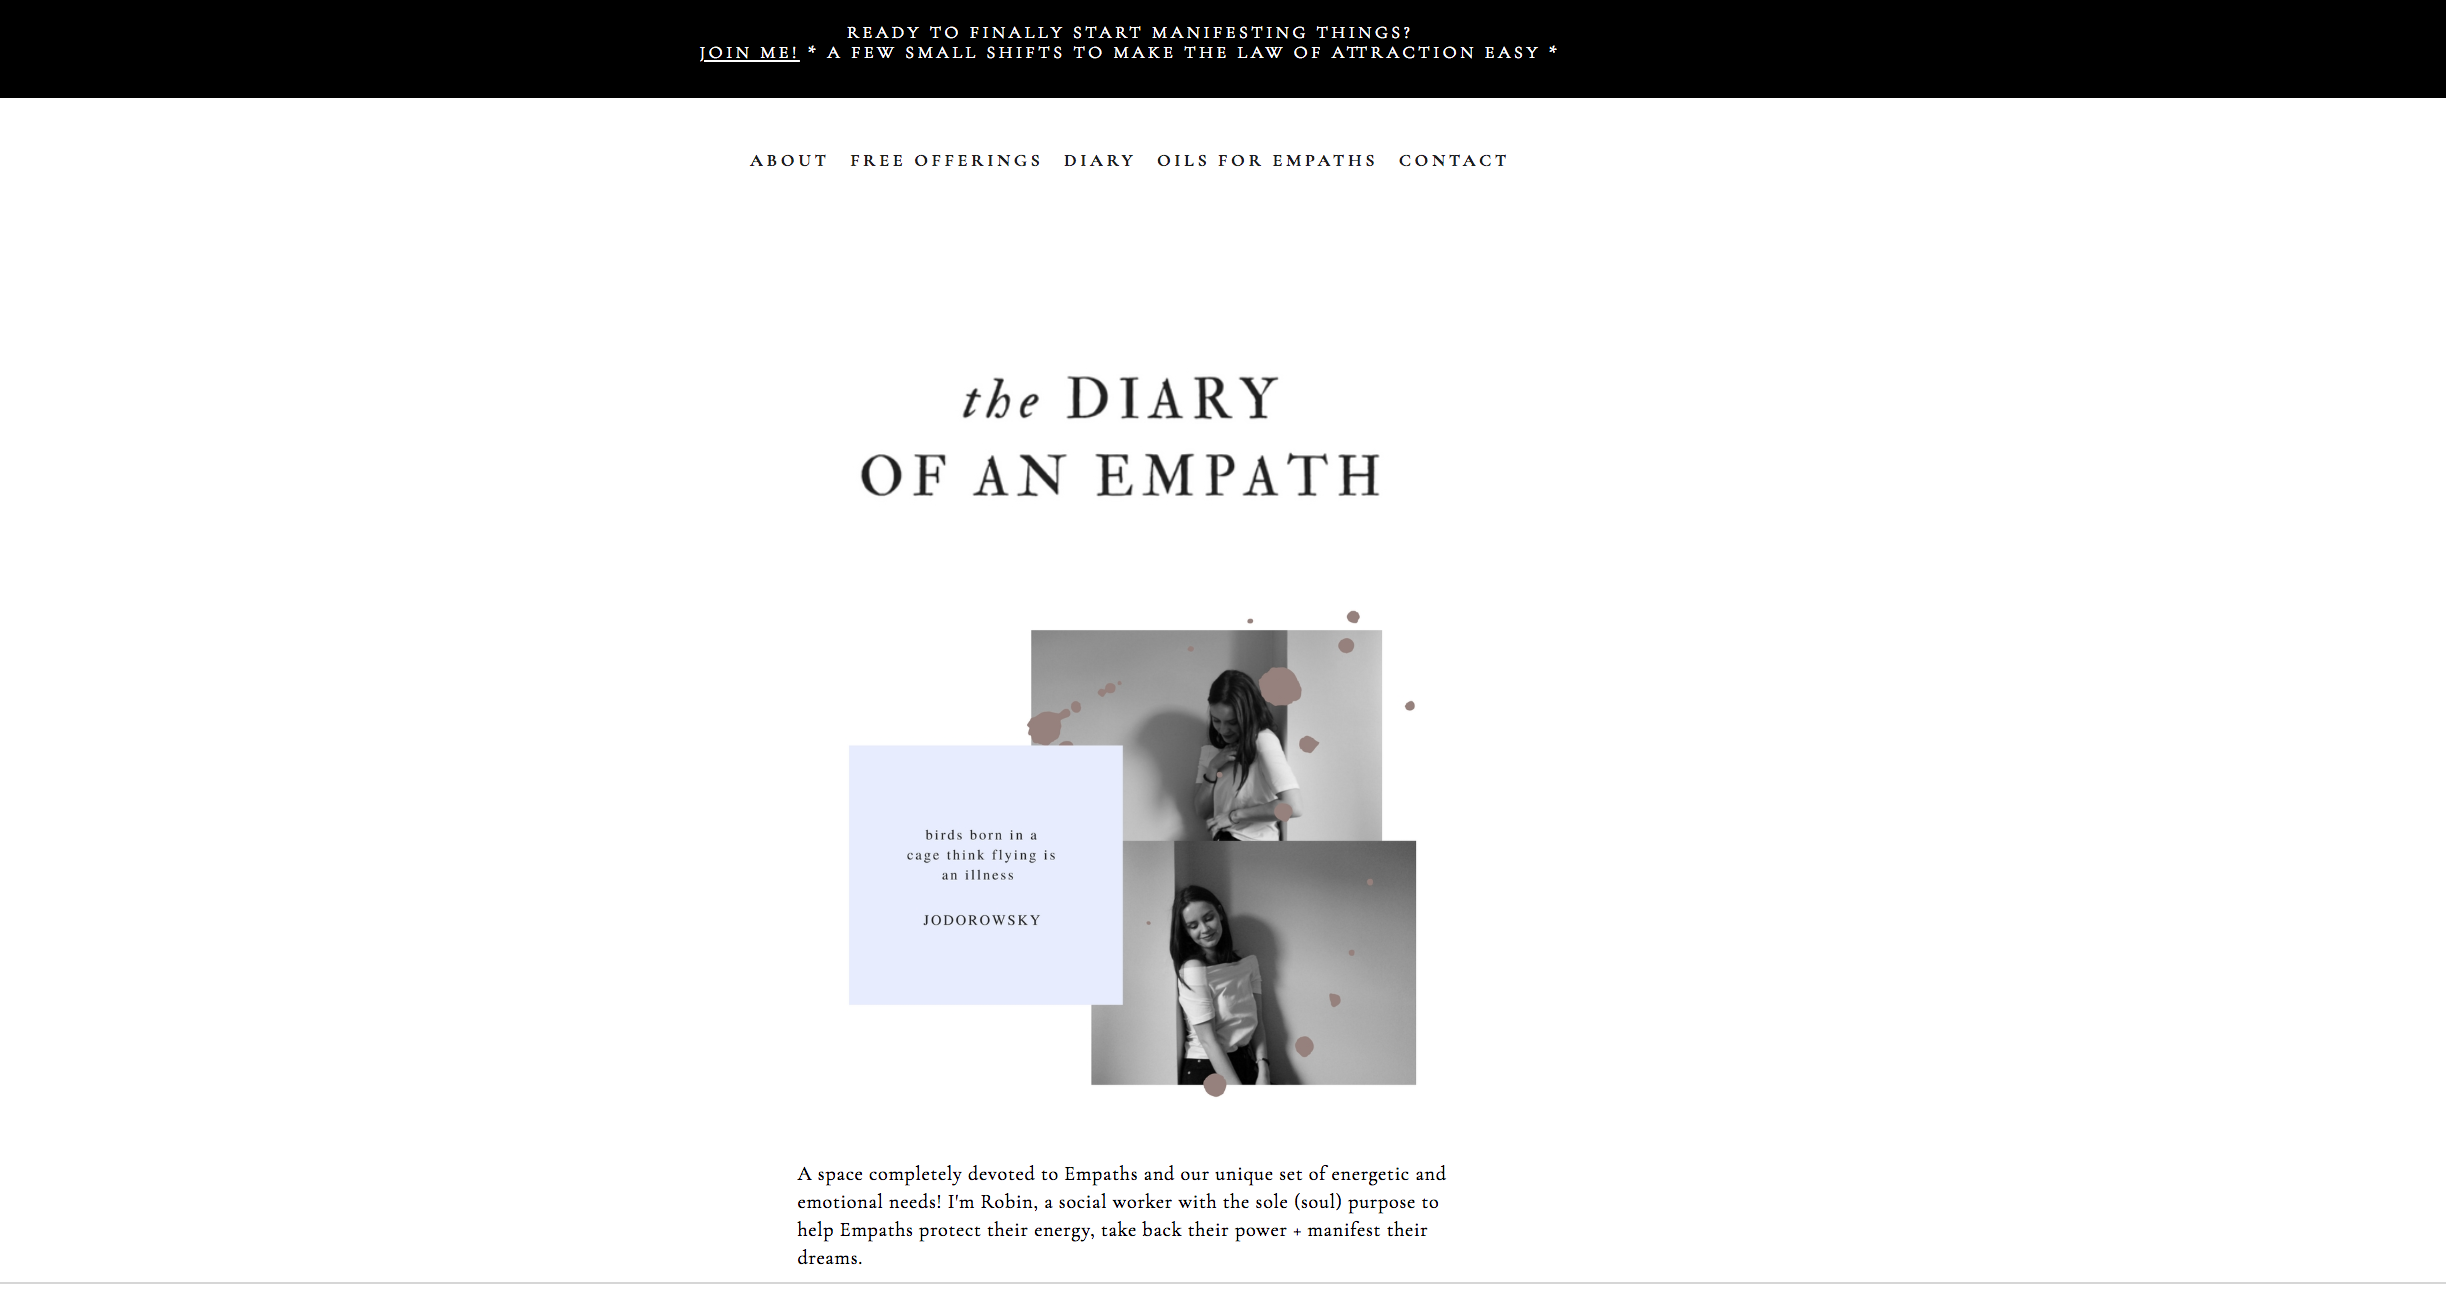 - Robin, creator of The Diary of an Empath, wanted to attract her ideal clients consistently, increase brand awareness, and acquire high quality web traffic.We crafted an exclusively organic social media strategy to meet her goals.Within 30 days of implementing her strategy, the page views on her blog and her sales tripled.